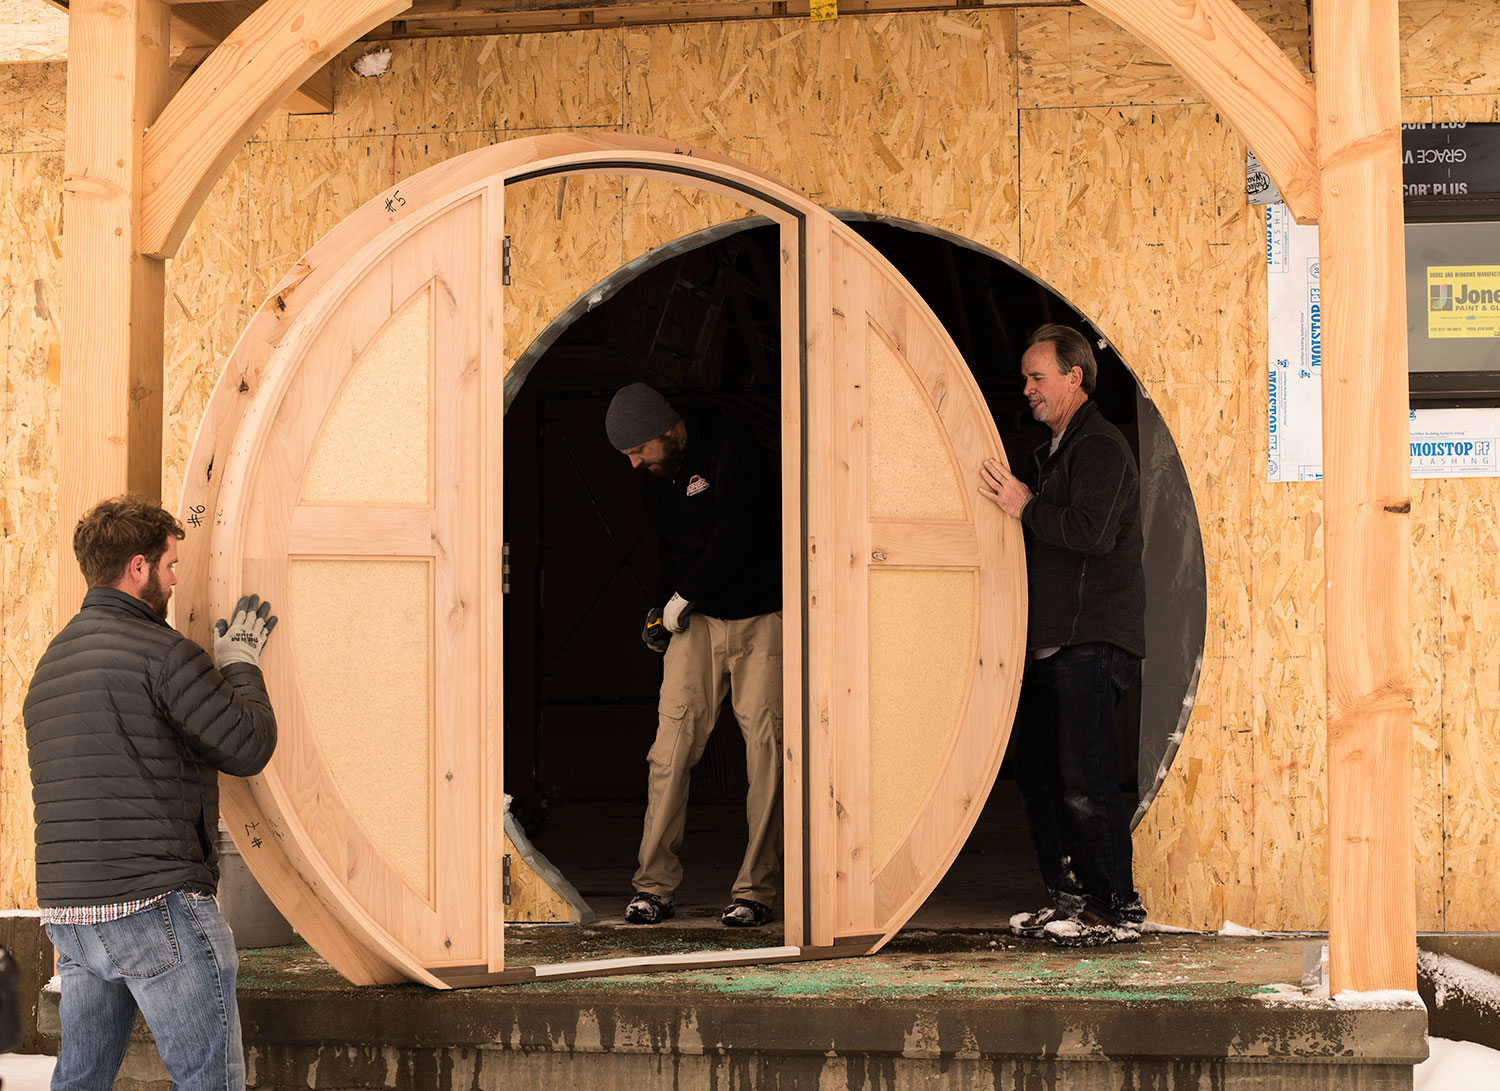 The Round Door Arrives